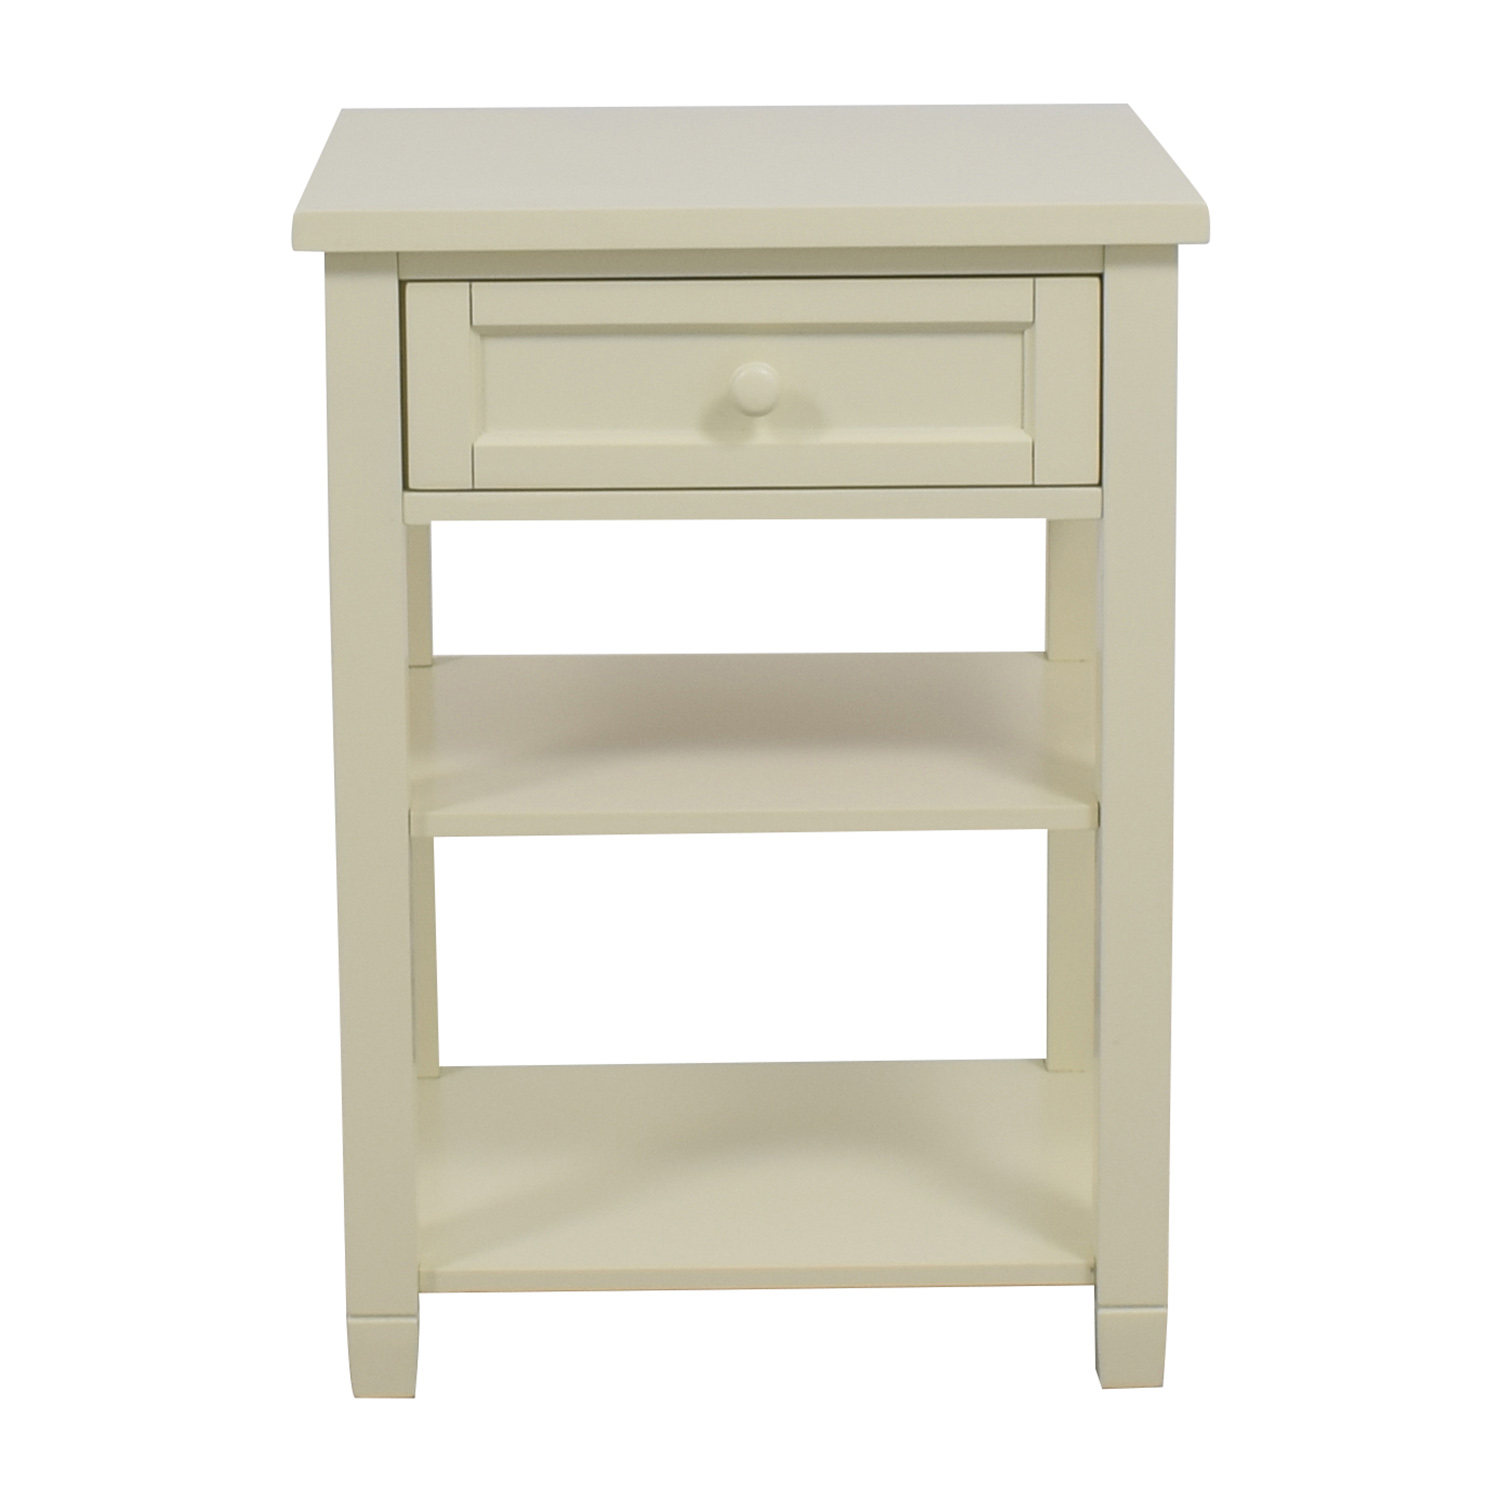 OFF Pottery Barn Pottery Barn Beadboard Bedside Table Tables - Pottery barn white bedside table